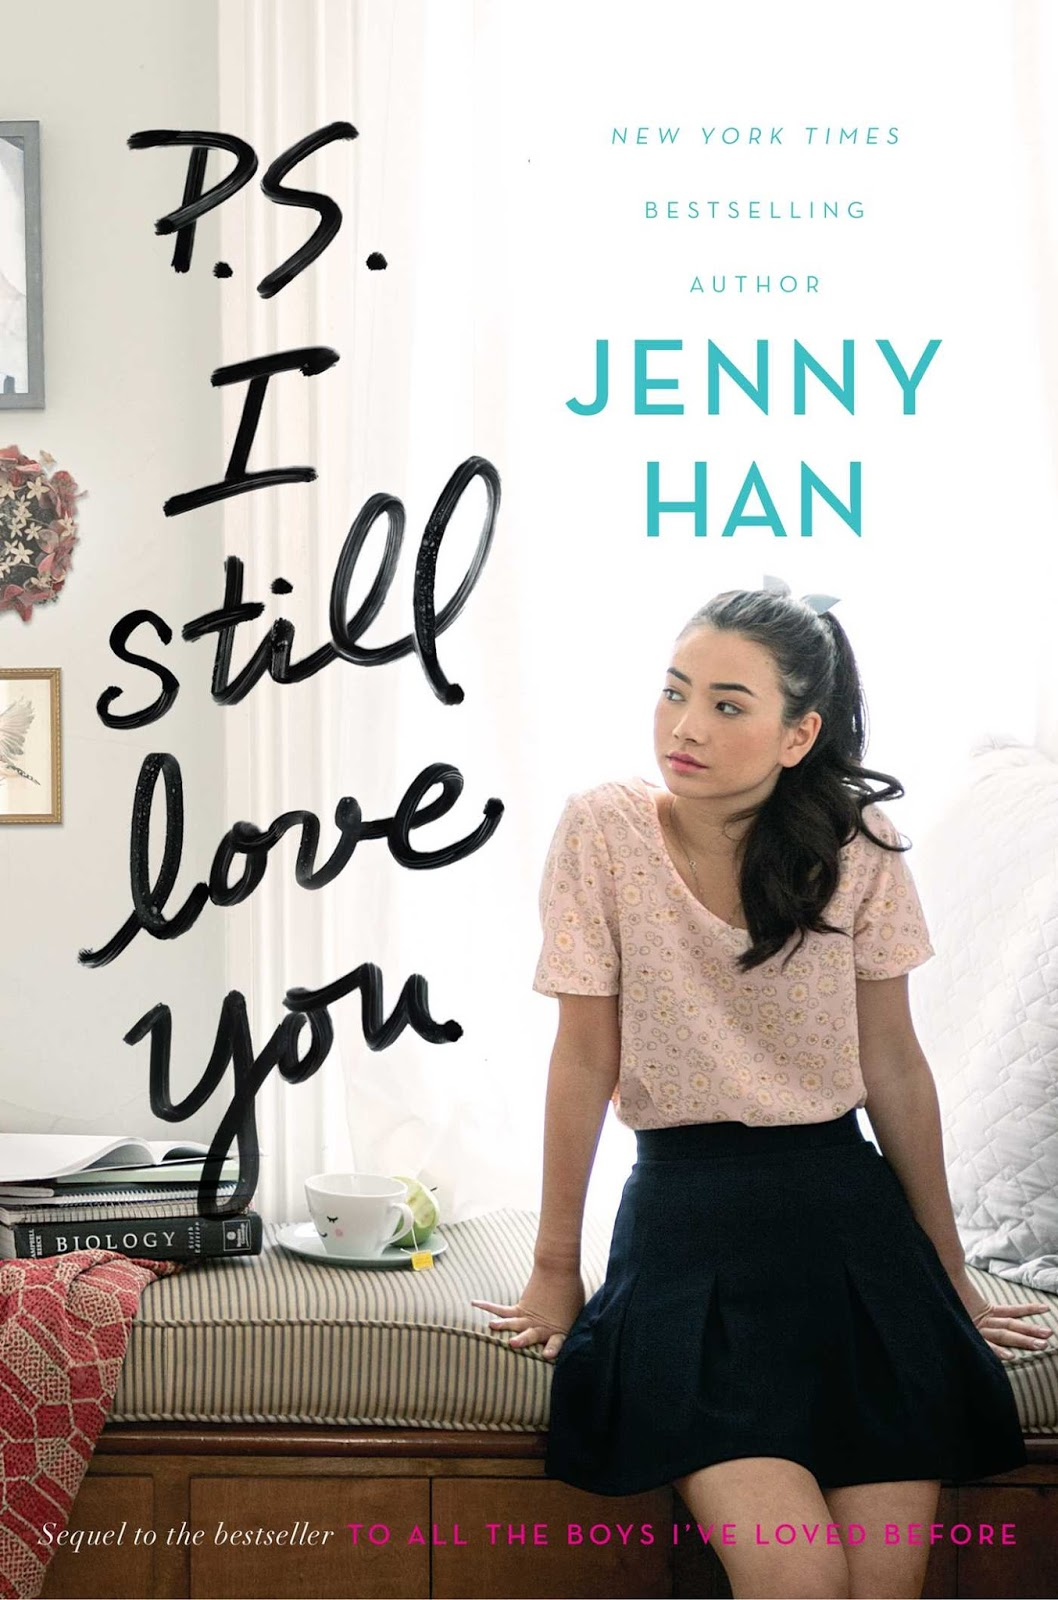 P.S. I Still Love You Jenny Han cover To All The Boys I've Loved Before